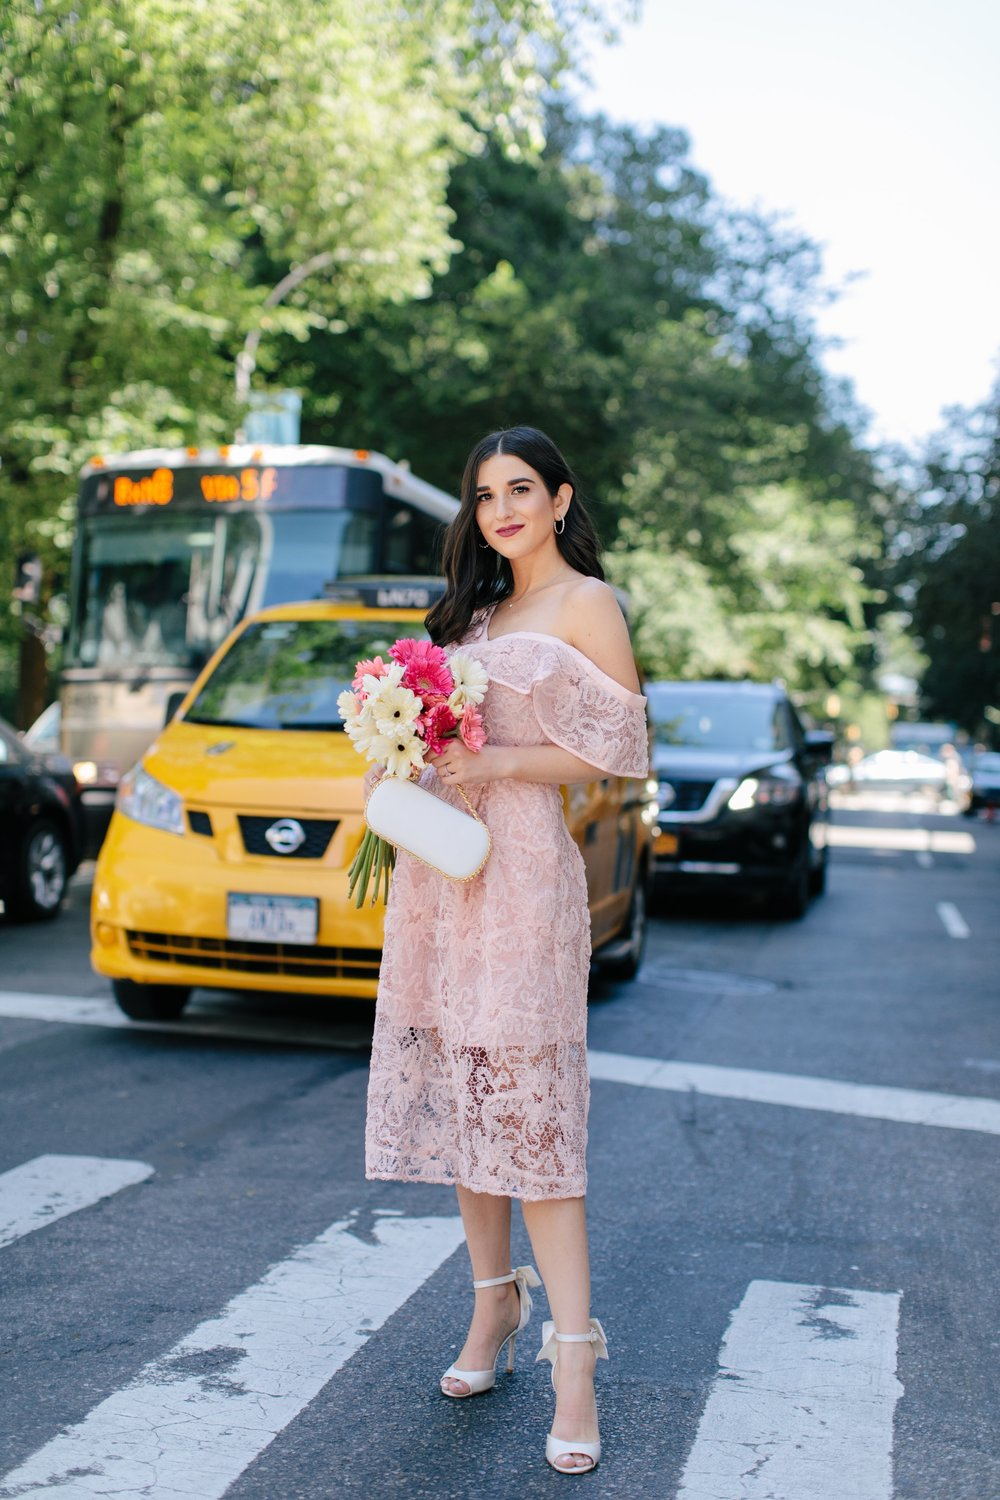 A New Perspective On Instagram Jealousy Pink Lace Dress Ivory Bow Heels Esther Santer Fashion Blog NYC Street Style Blogger Outfit OOTD Trendy Formal White Bag Clutch Self Portrait Designer Kate Spade Wedding Shoes Fancy Elegant Feminine Wear Shopping.jpg